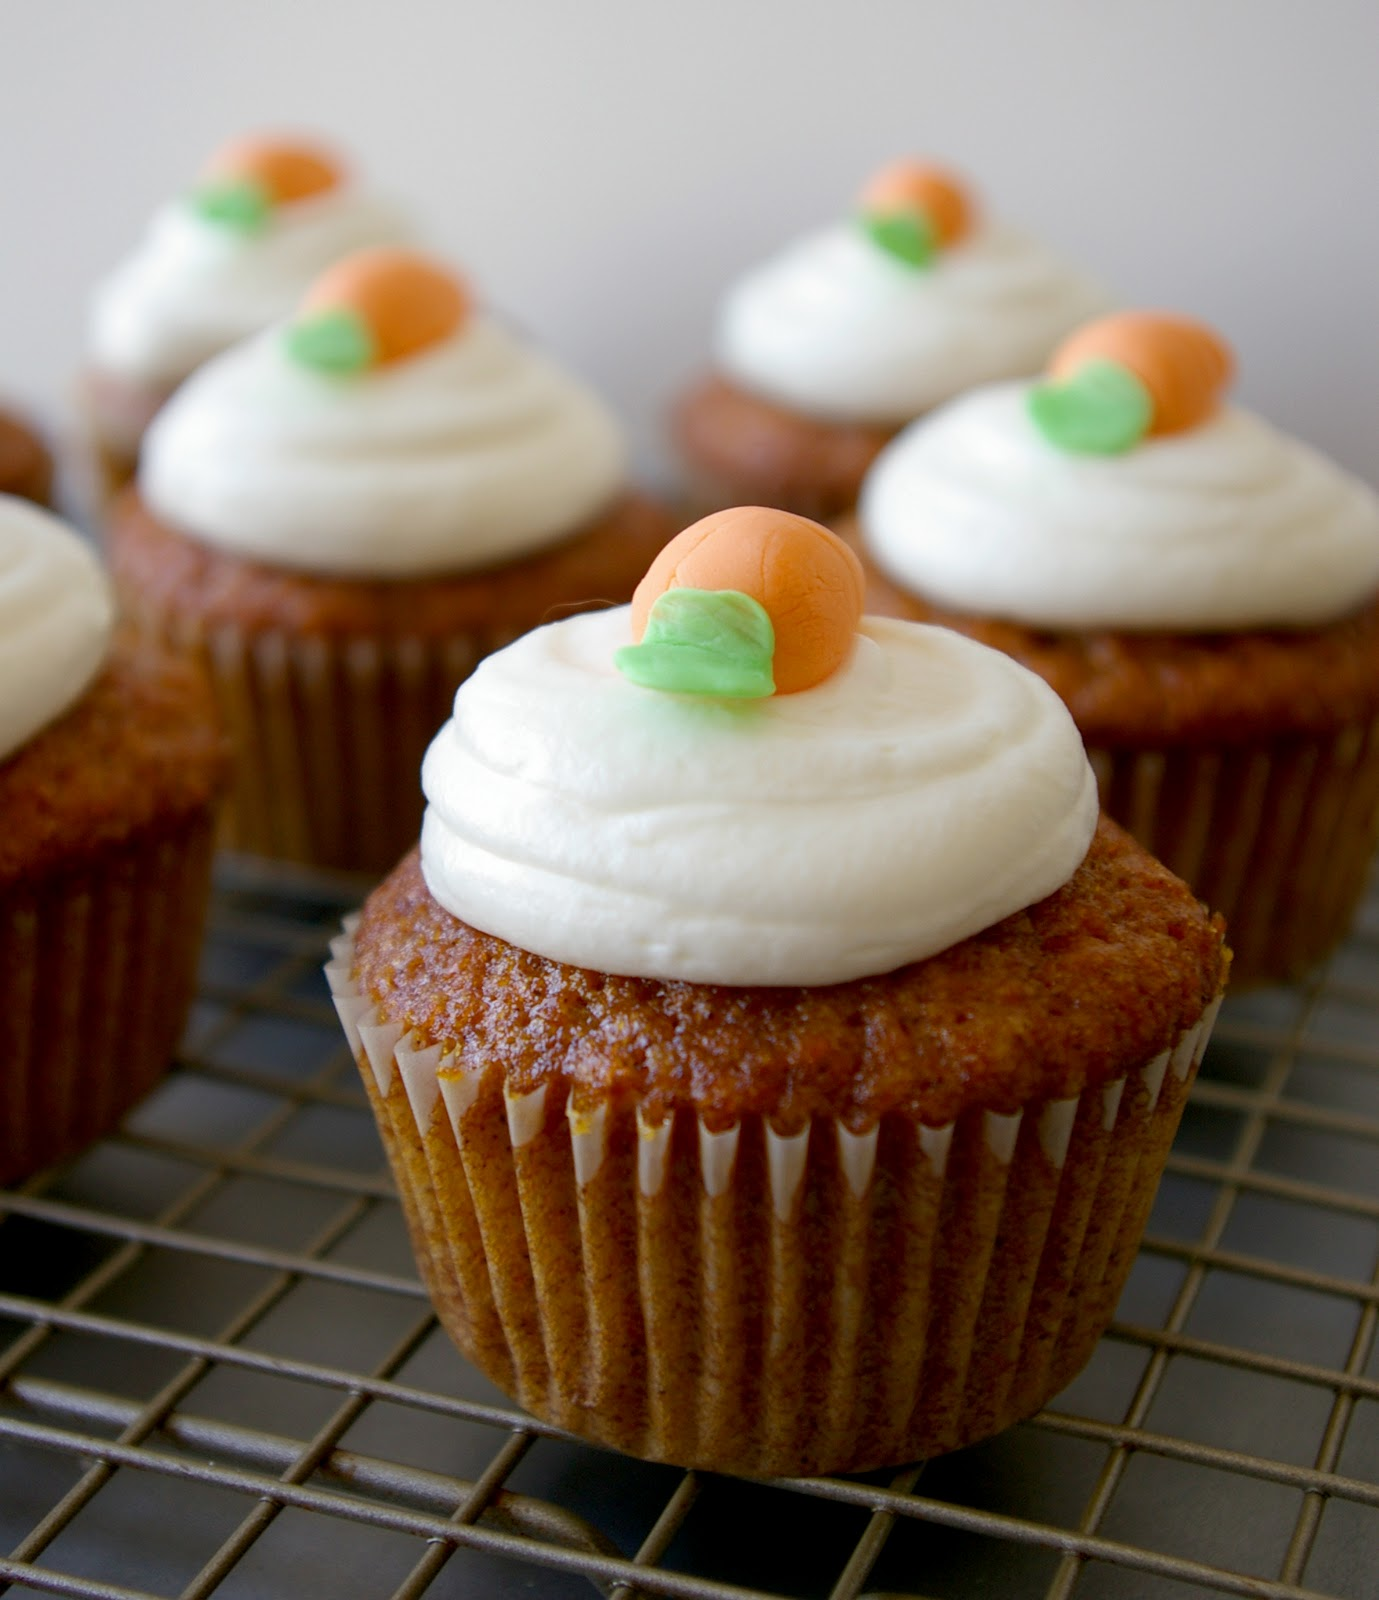 Images Of Carrot Cake Cupcakes : These Peas are Hollow: Carrot Cake Cupcakes